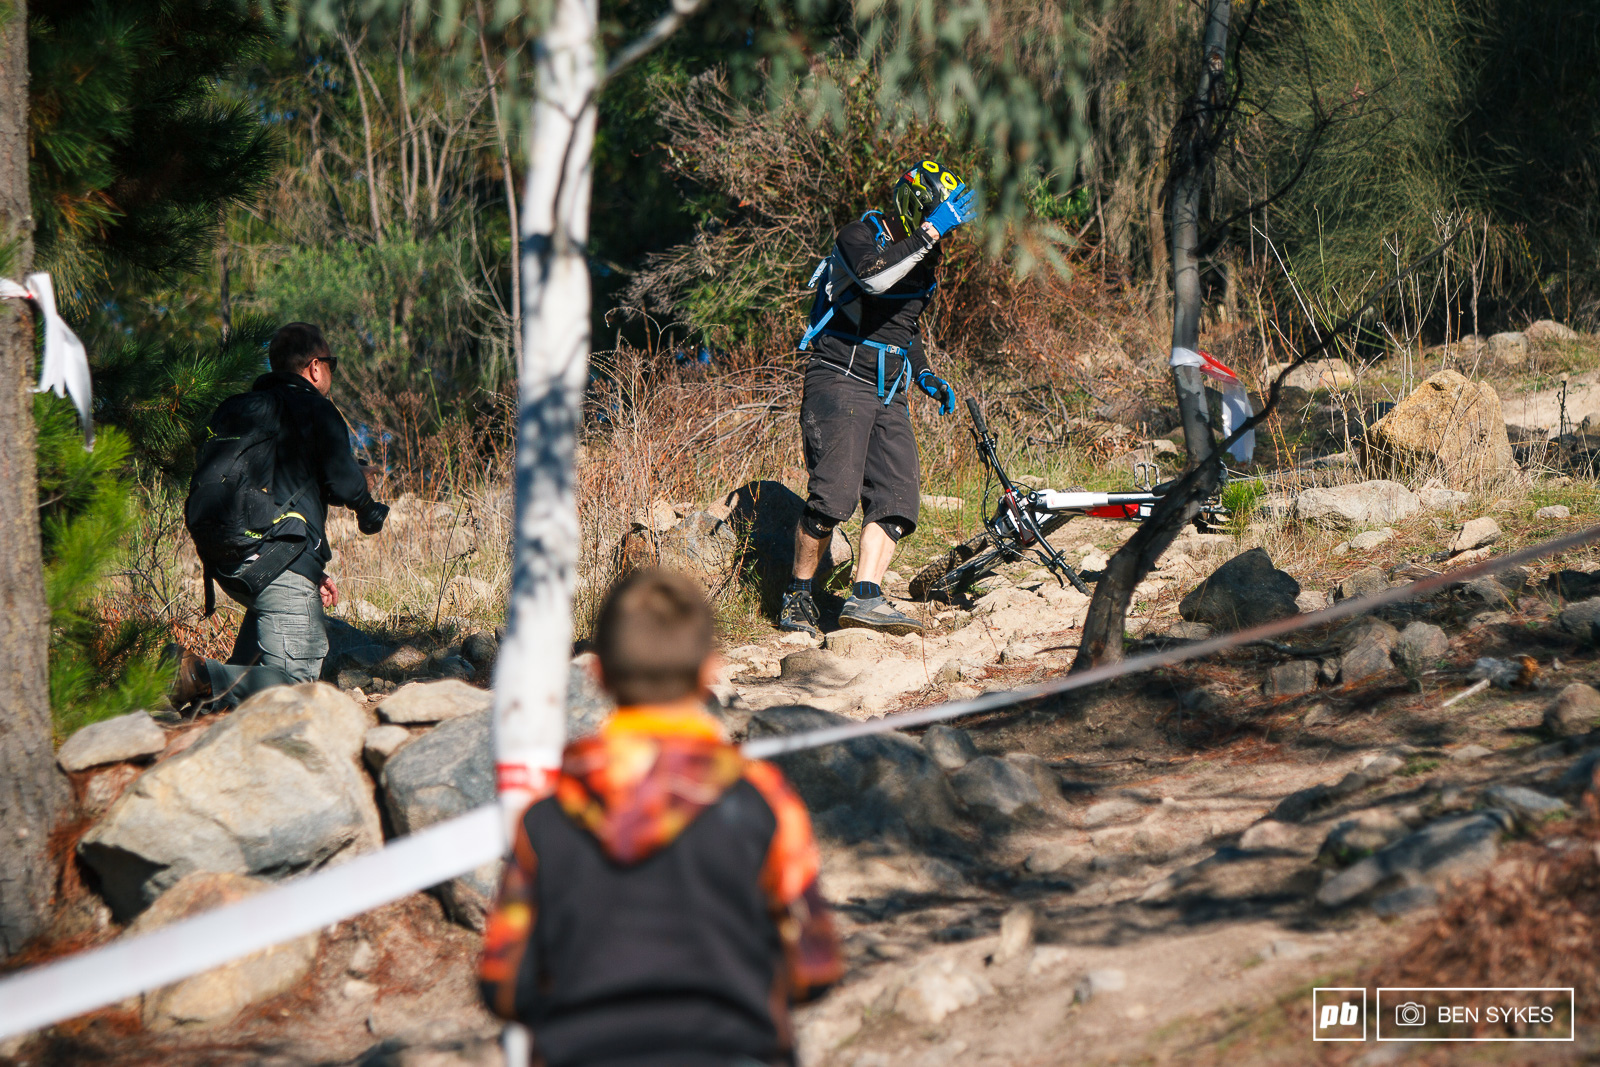 The inclusion of Up The Anti a steep rocky section made for some hard work and crashes.